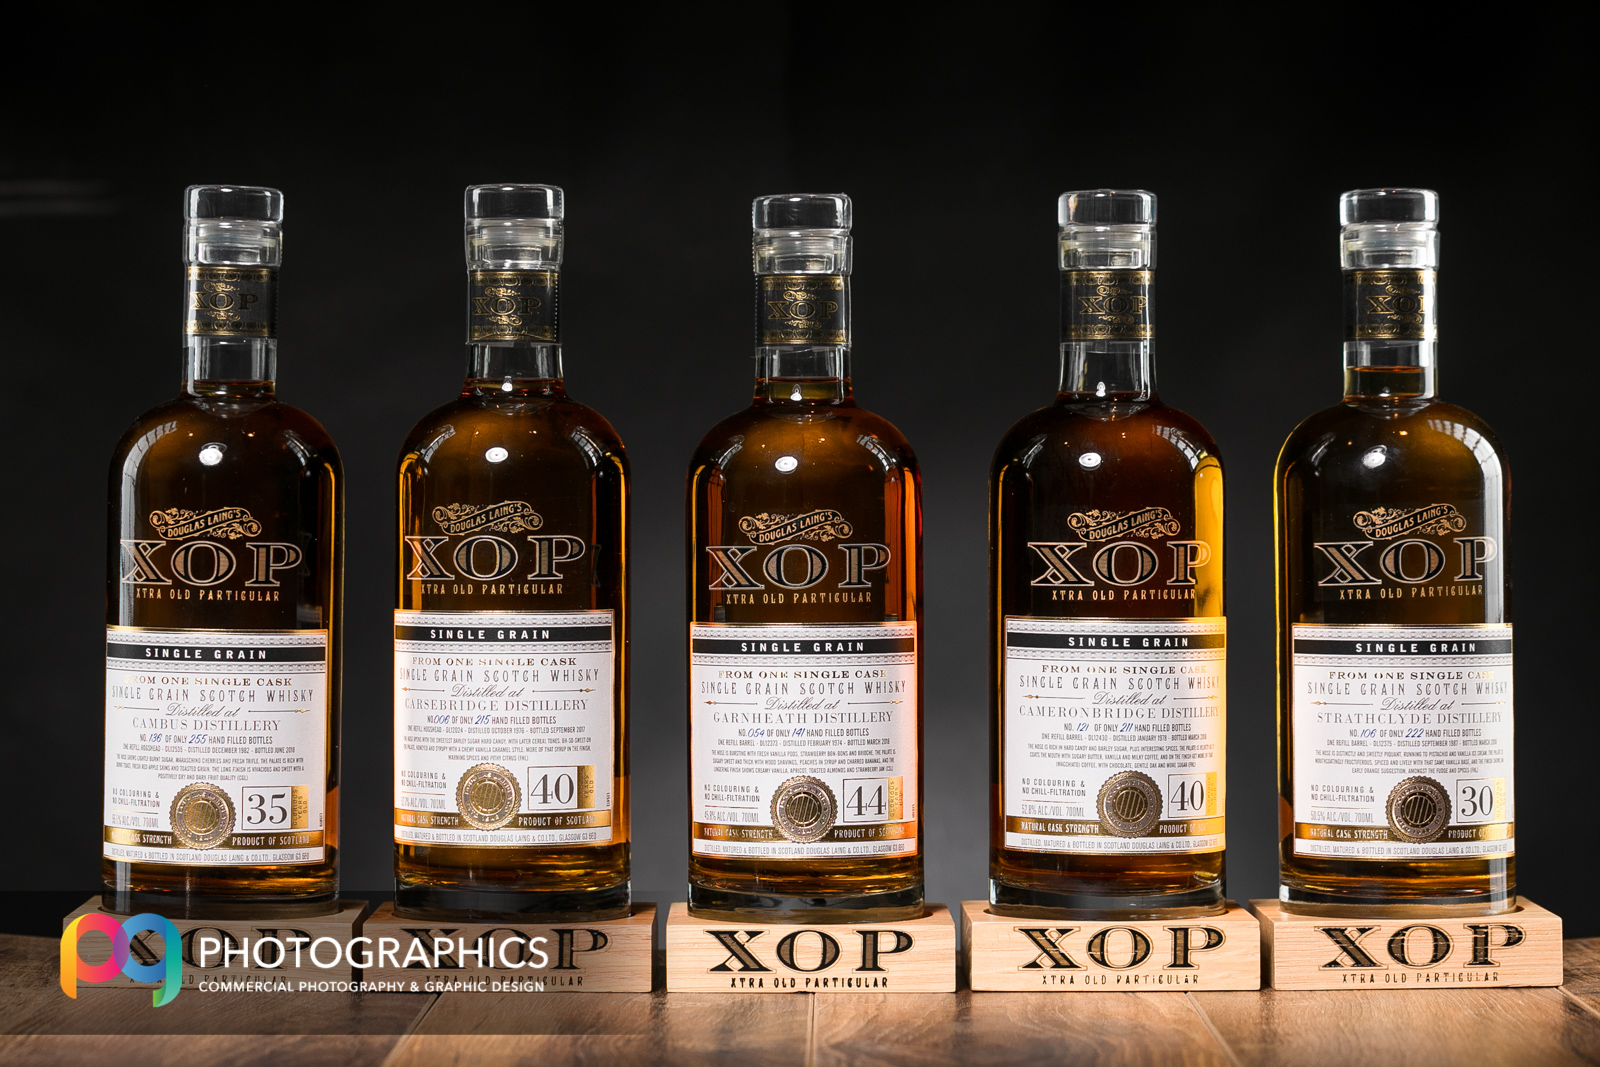 product-whisky-photography-glasgow-edinburgh-scotland-10.jpg